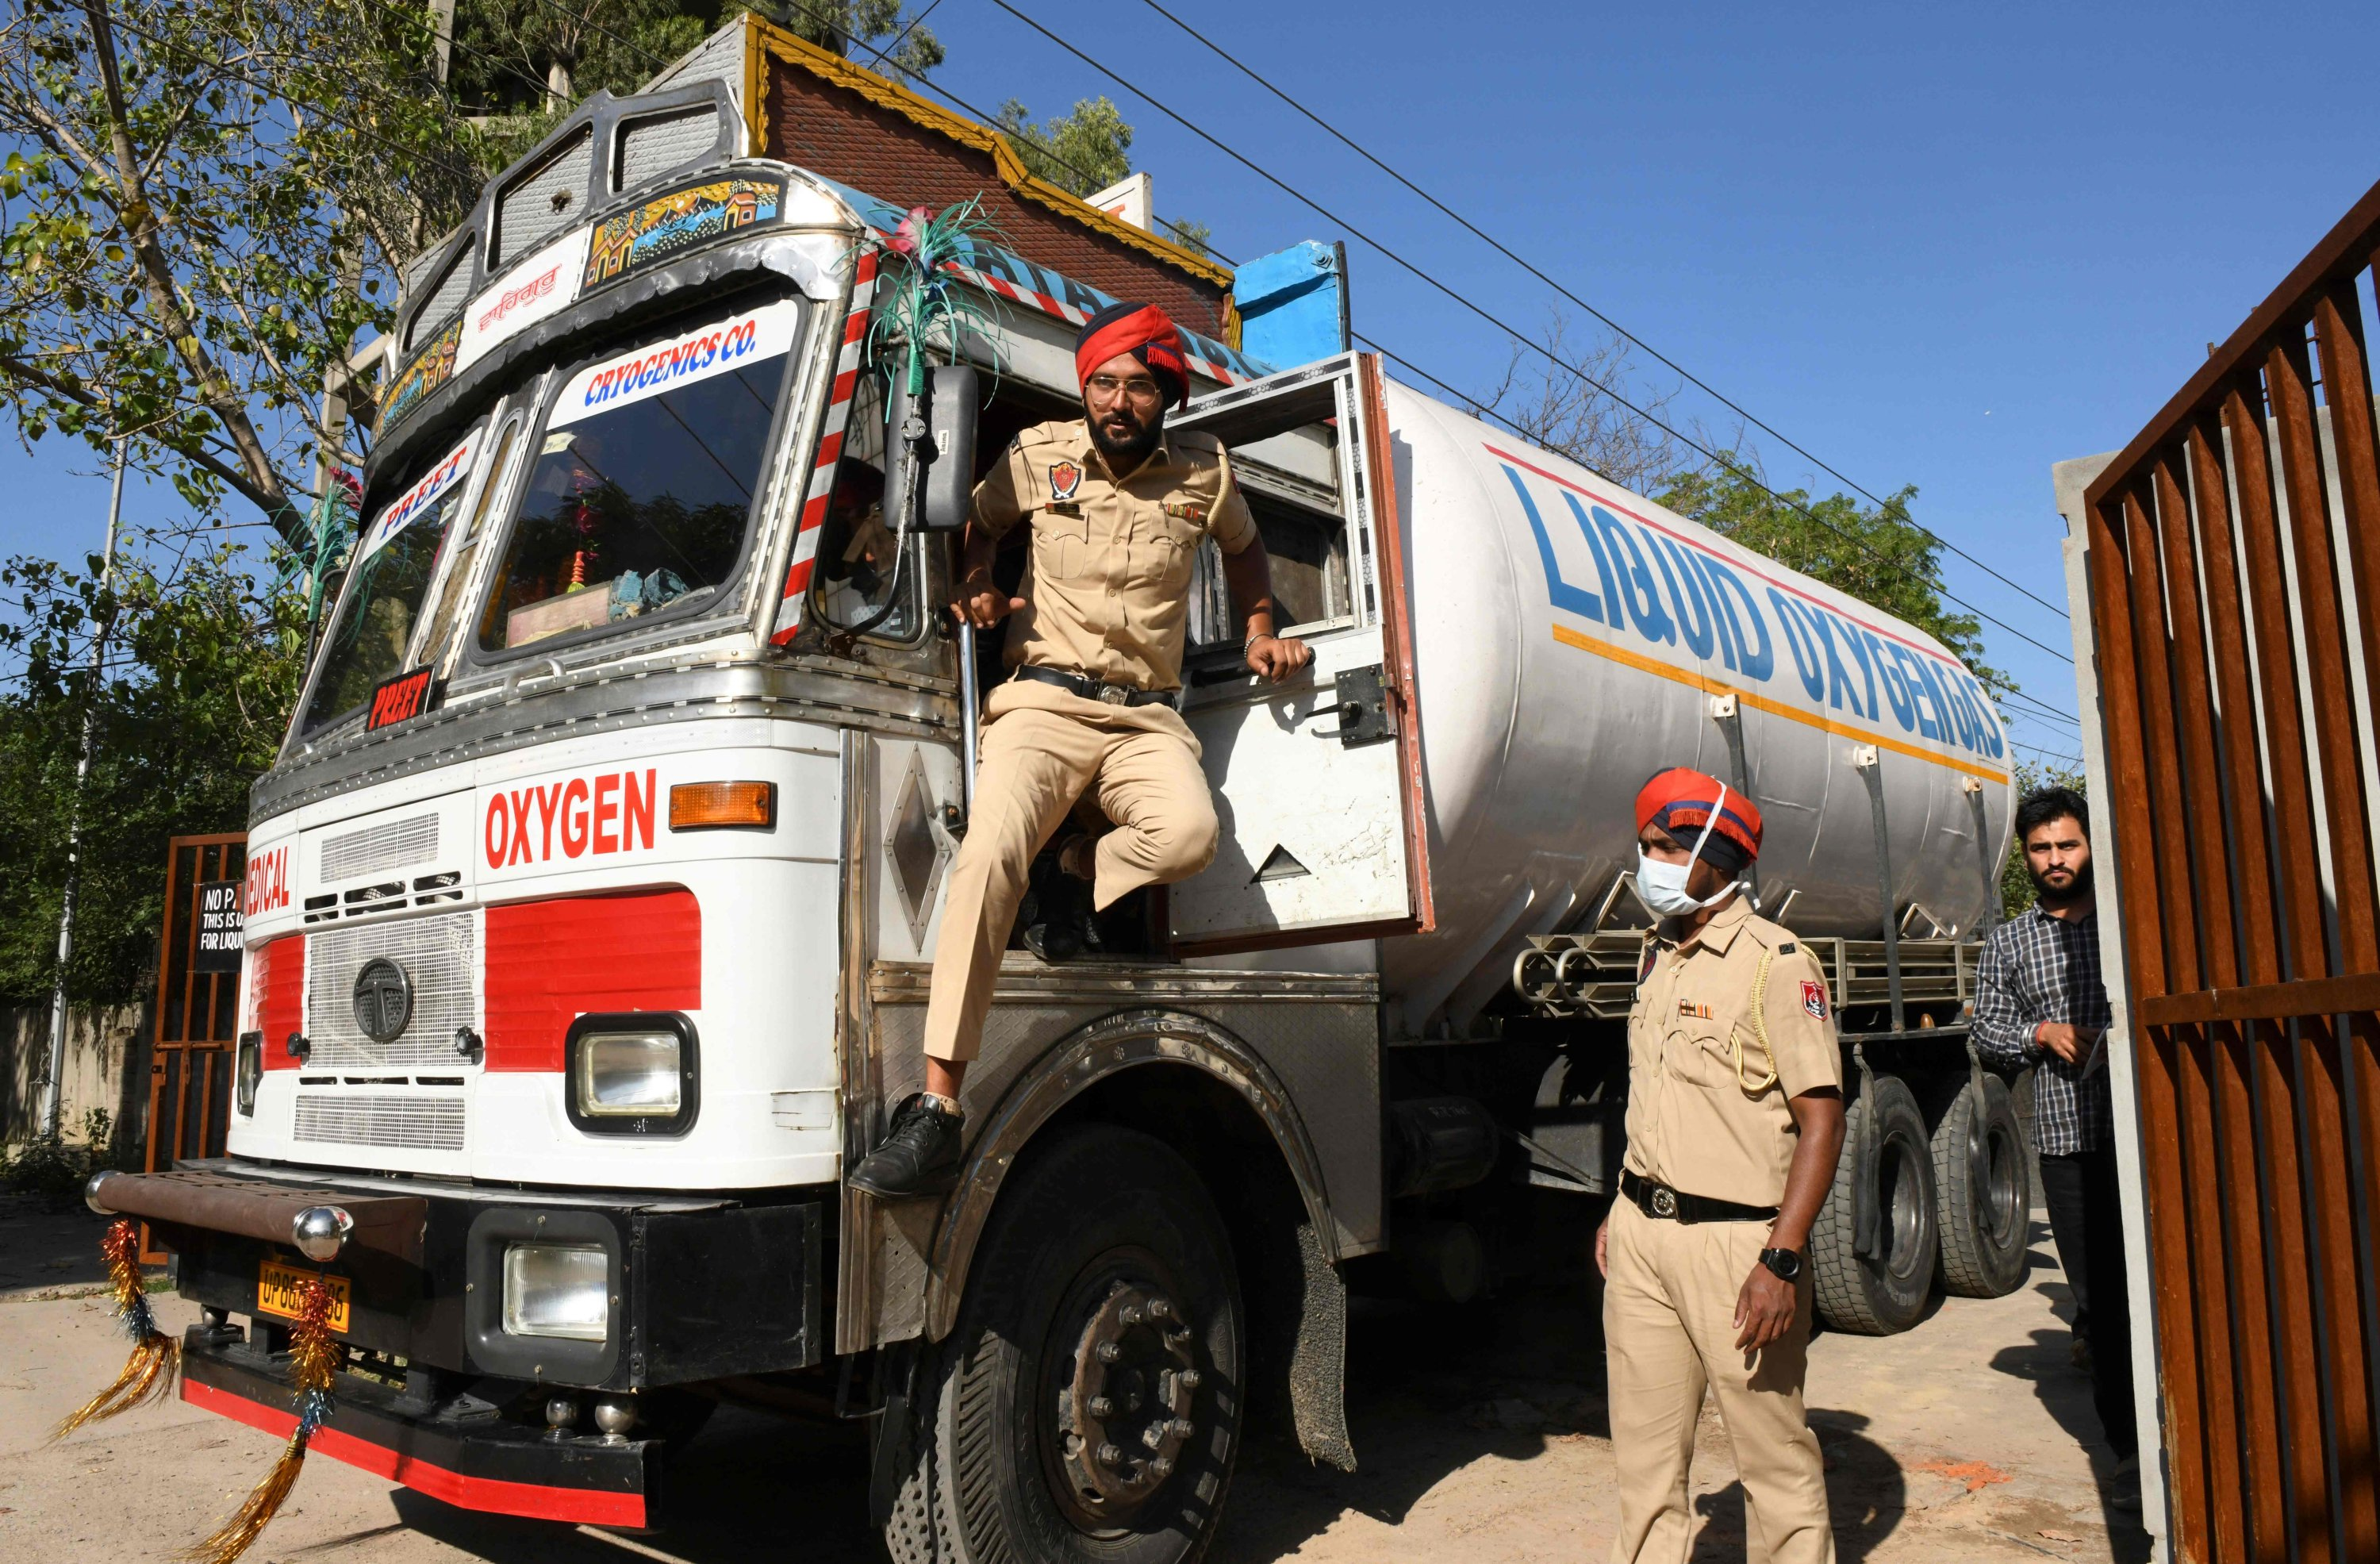 Police personnel prepare to escort a truck carrying medical liquid oxygen atthe Guru Nanak Dev hospital amid COVID-19 pandemic, in Amritsar, India, April 24, 2021. (AFP Photo)